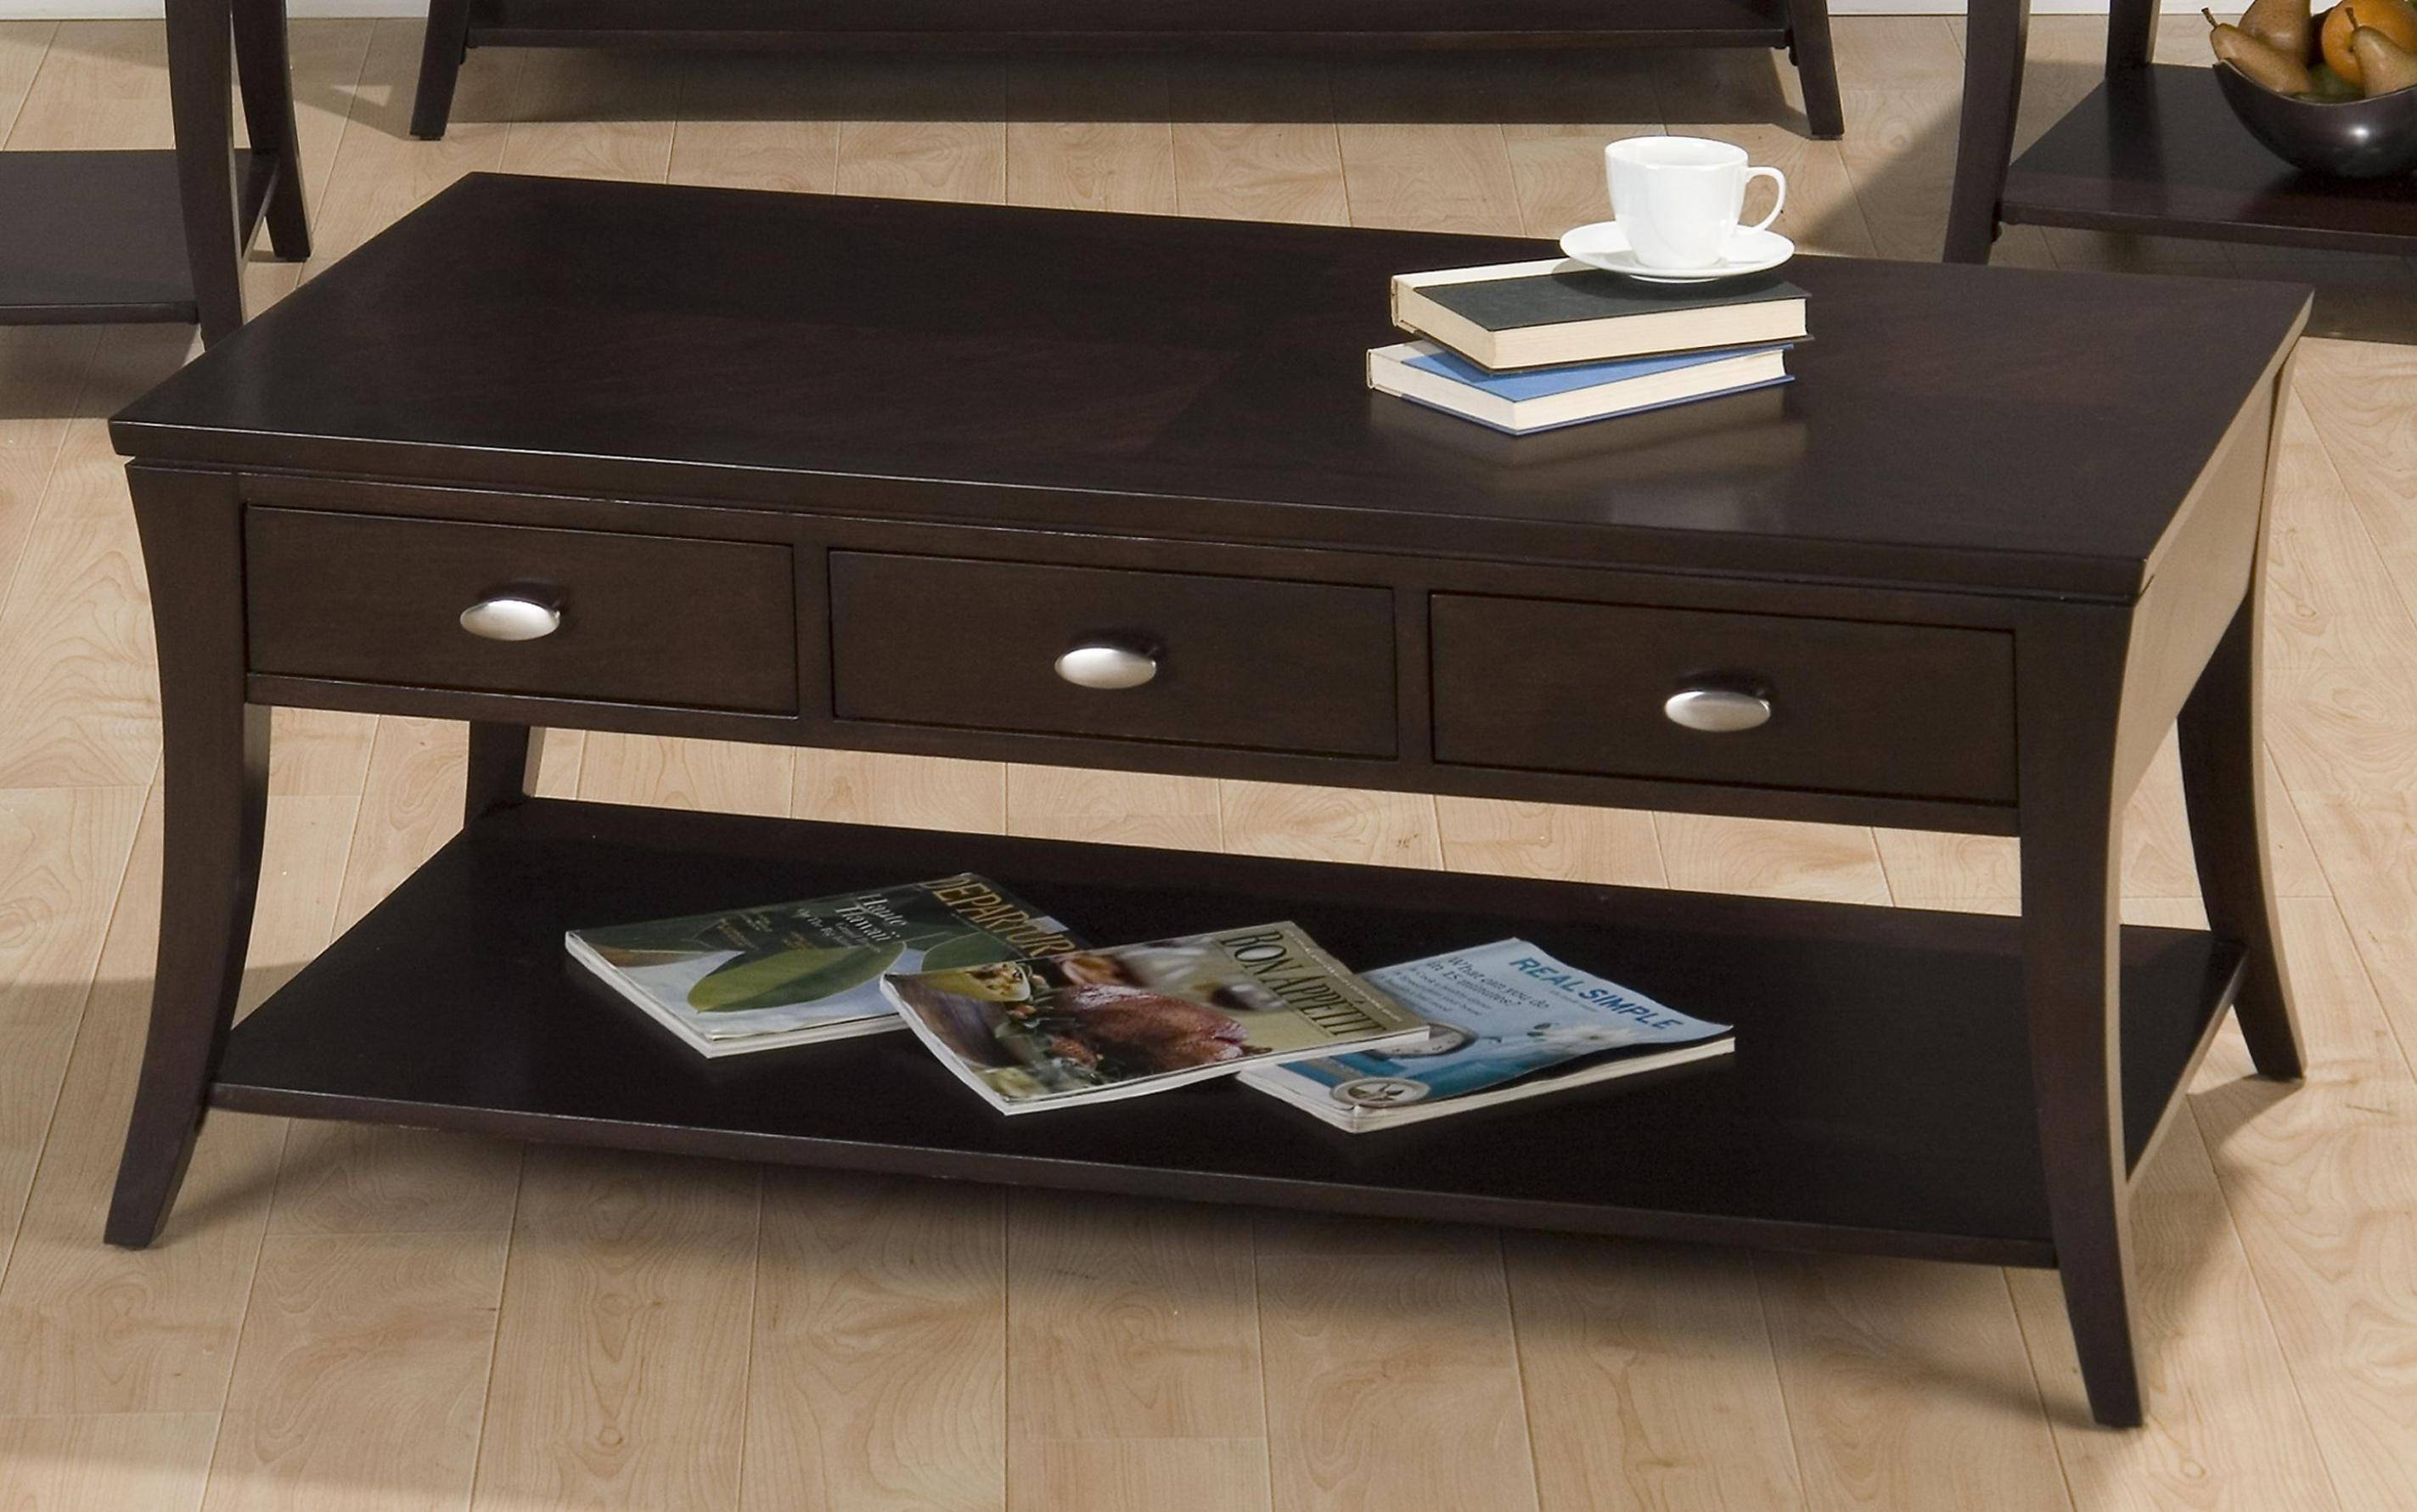 Attractive Contemporary Wooden Coffee Tables Accent Tables inside Coffee Tables With Shelves (Image 1 of 30)